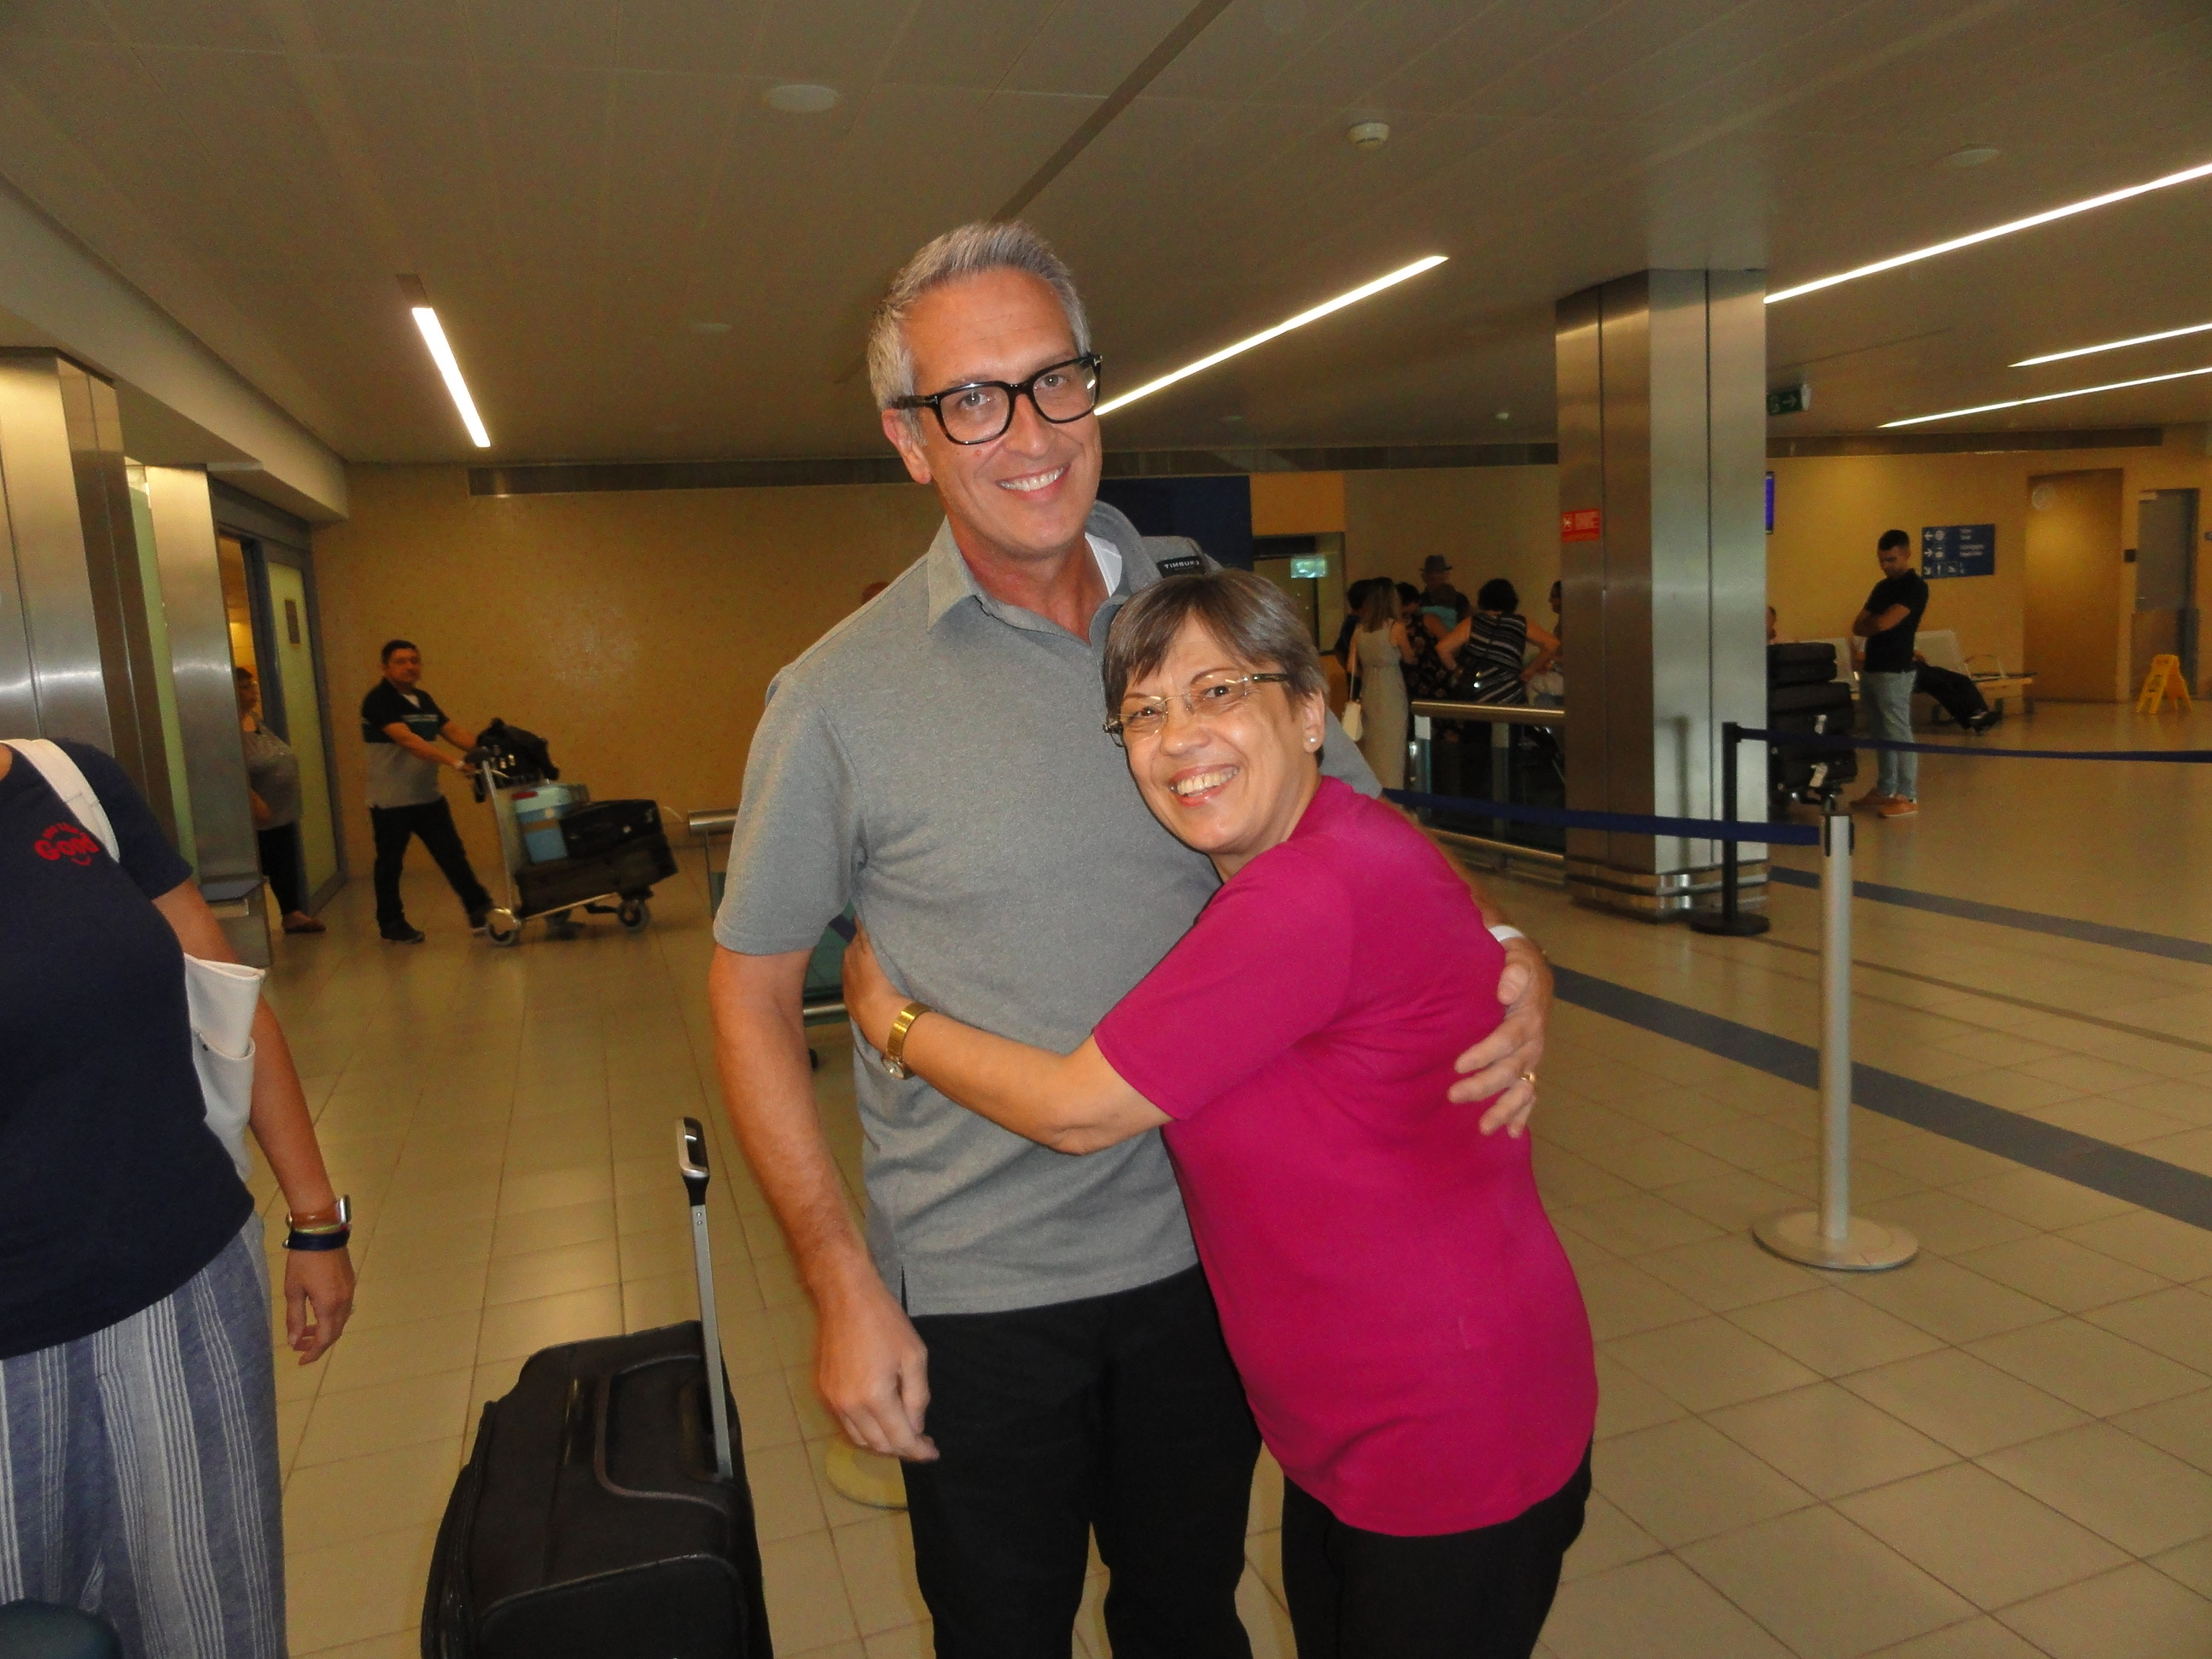 Nair Alves, right, greets Ben Clonts, one of the missionaries who helped teach and baptize the Alves family in 1985, at the Lajes Airport on the Azores' Terceira Island on Sept. 18, 2019.